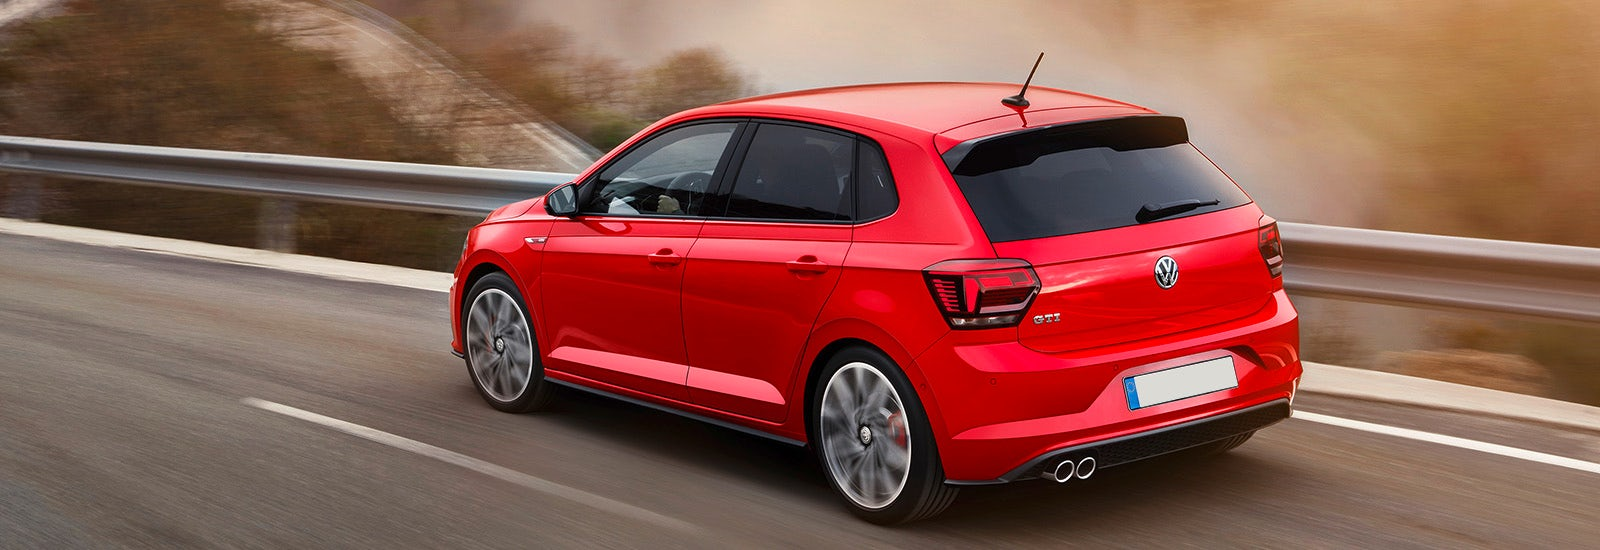 Volkswagen polo volkswagen car from united kingdom - 2018 Vw Polo Gti Price And Release Date